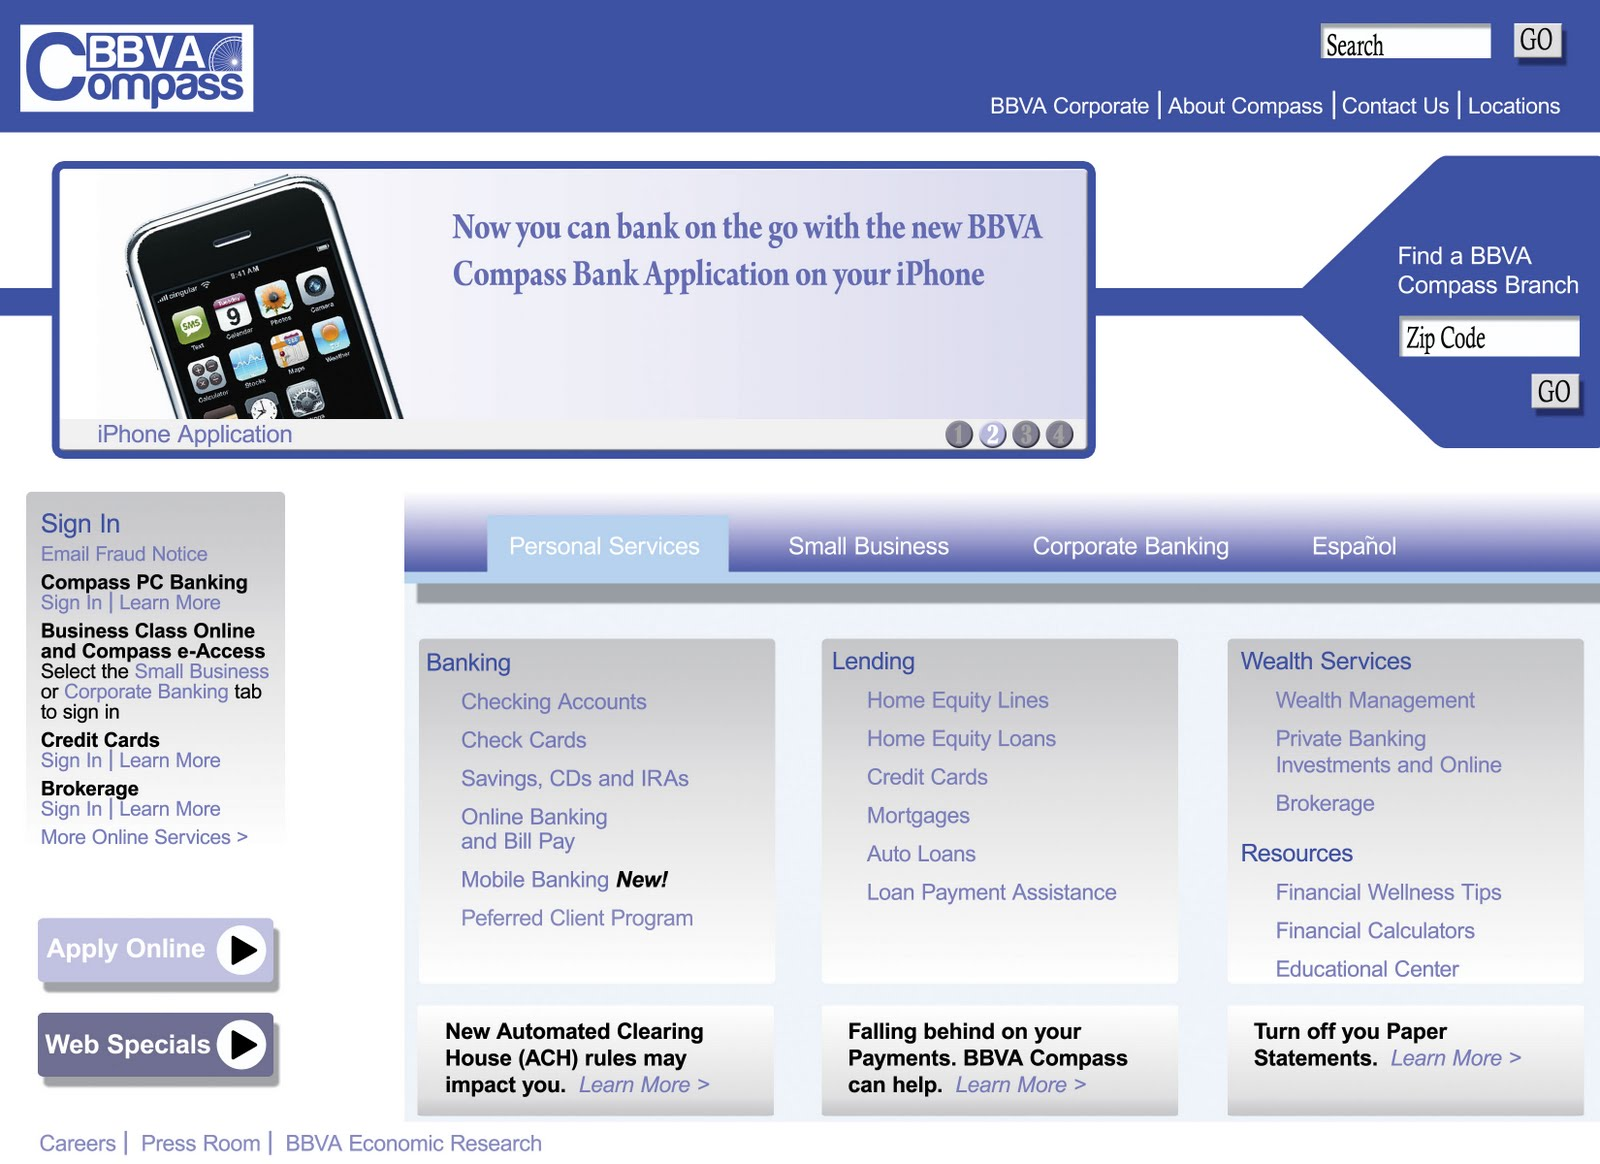 bbva compass bank official website